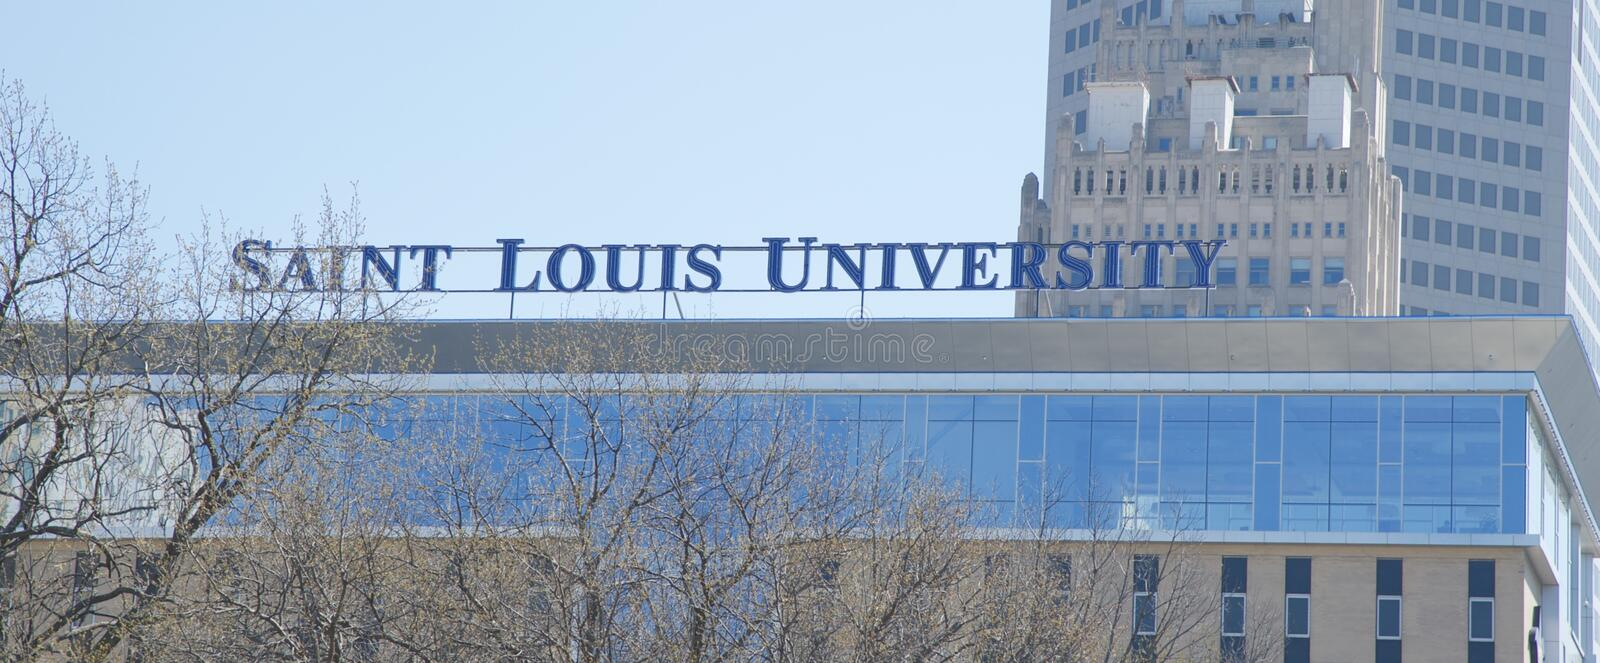 Saint Louis University, St Louis Missouri photos libres de droits